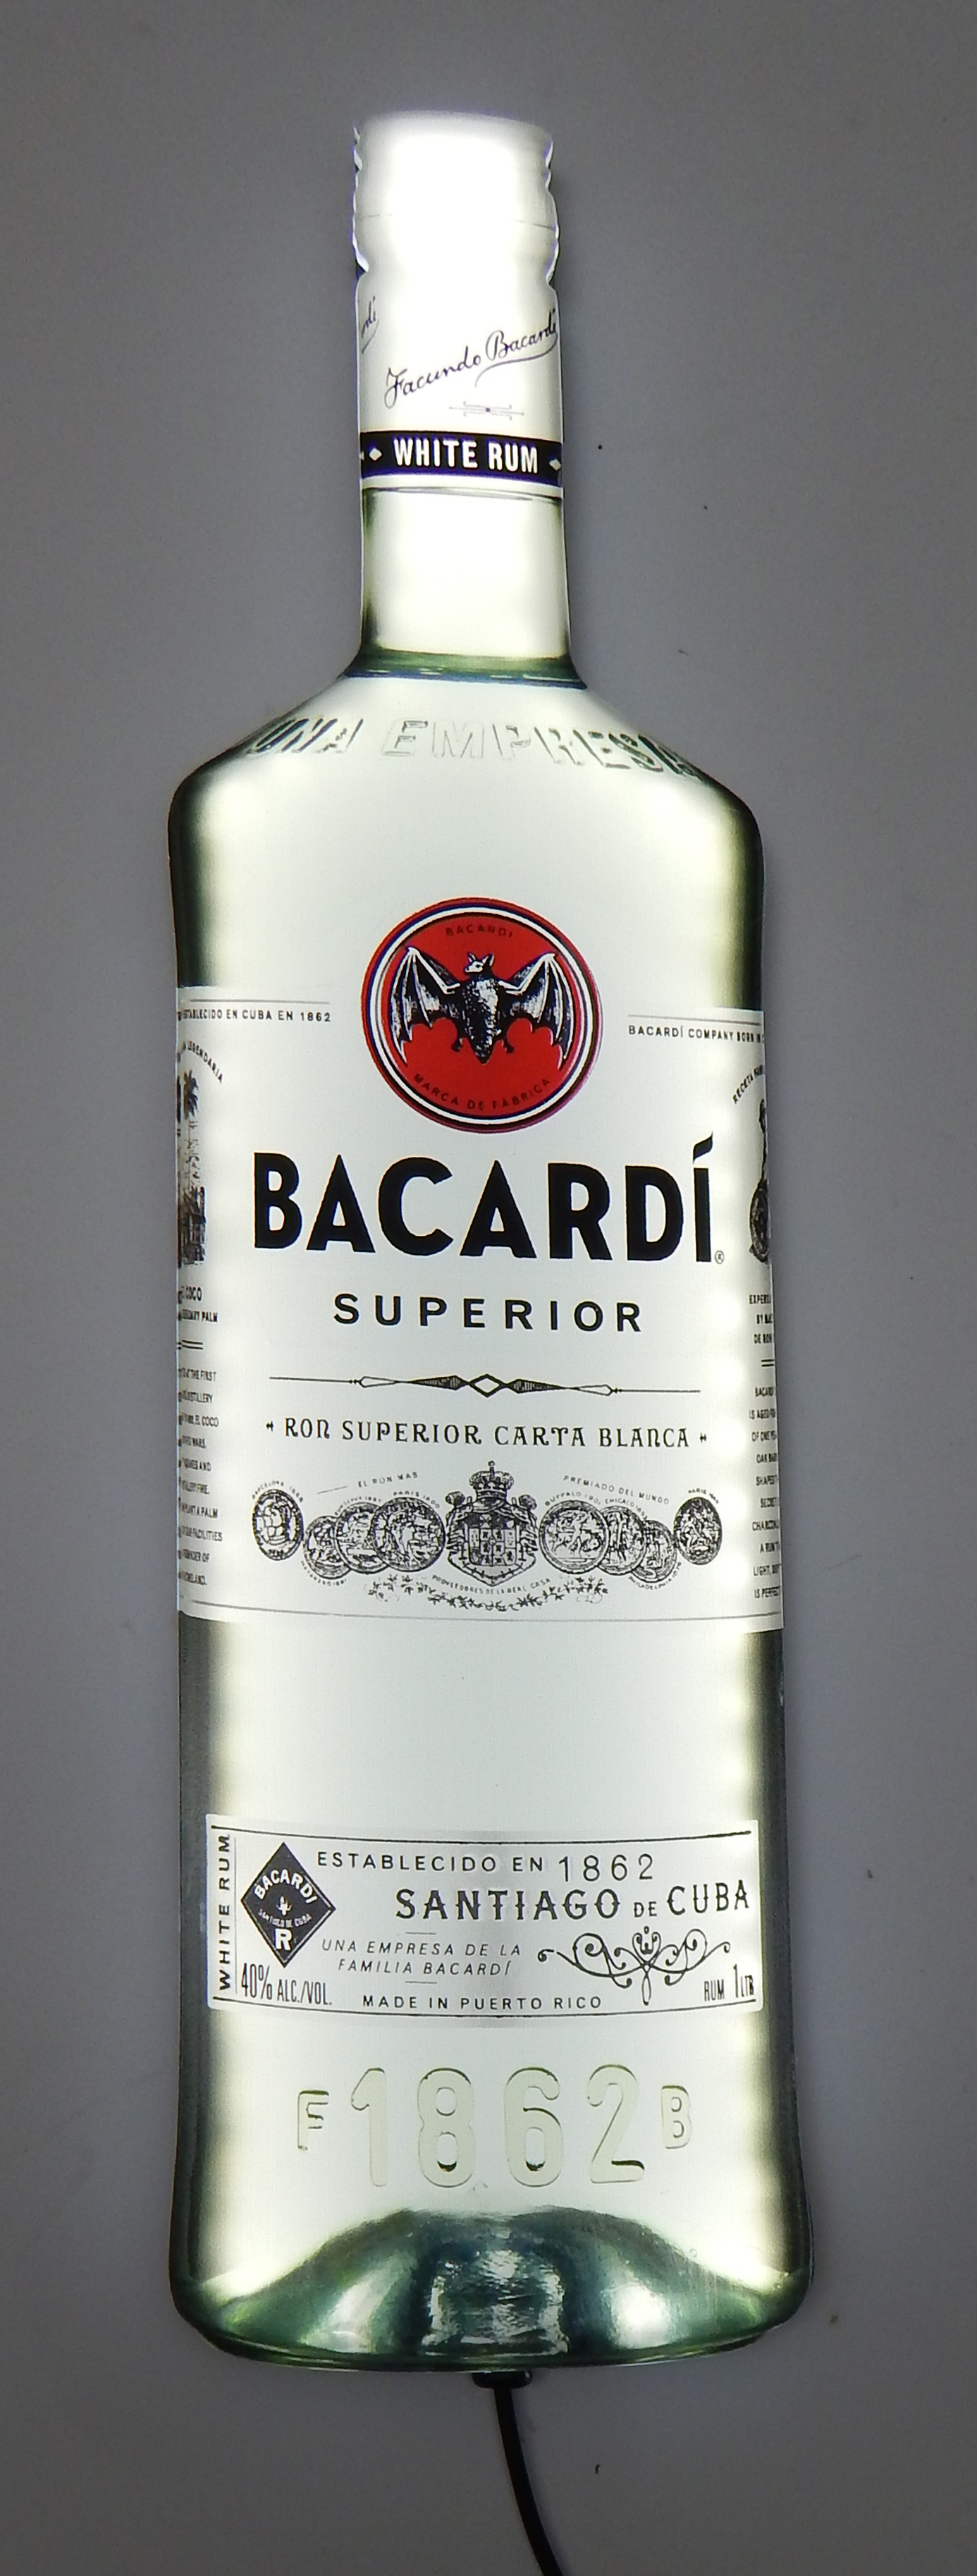 Bacardi Superior Slim-LiteLED